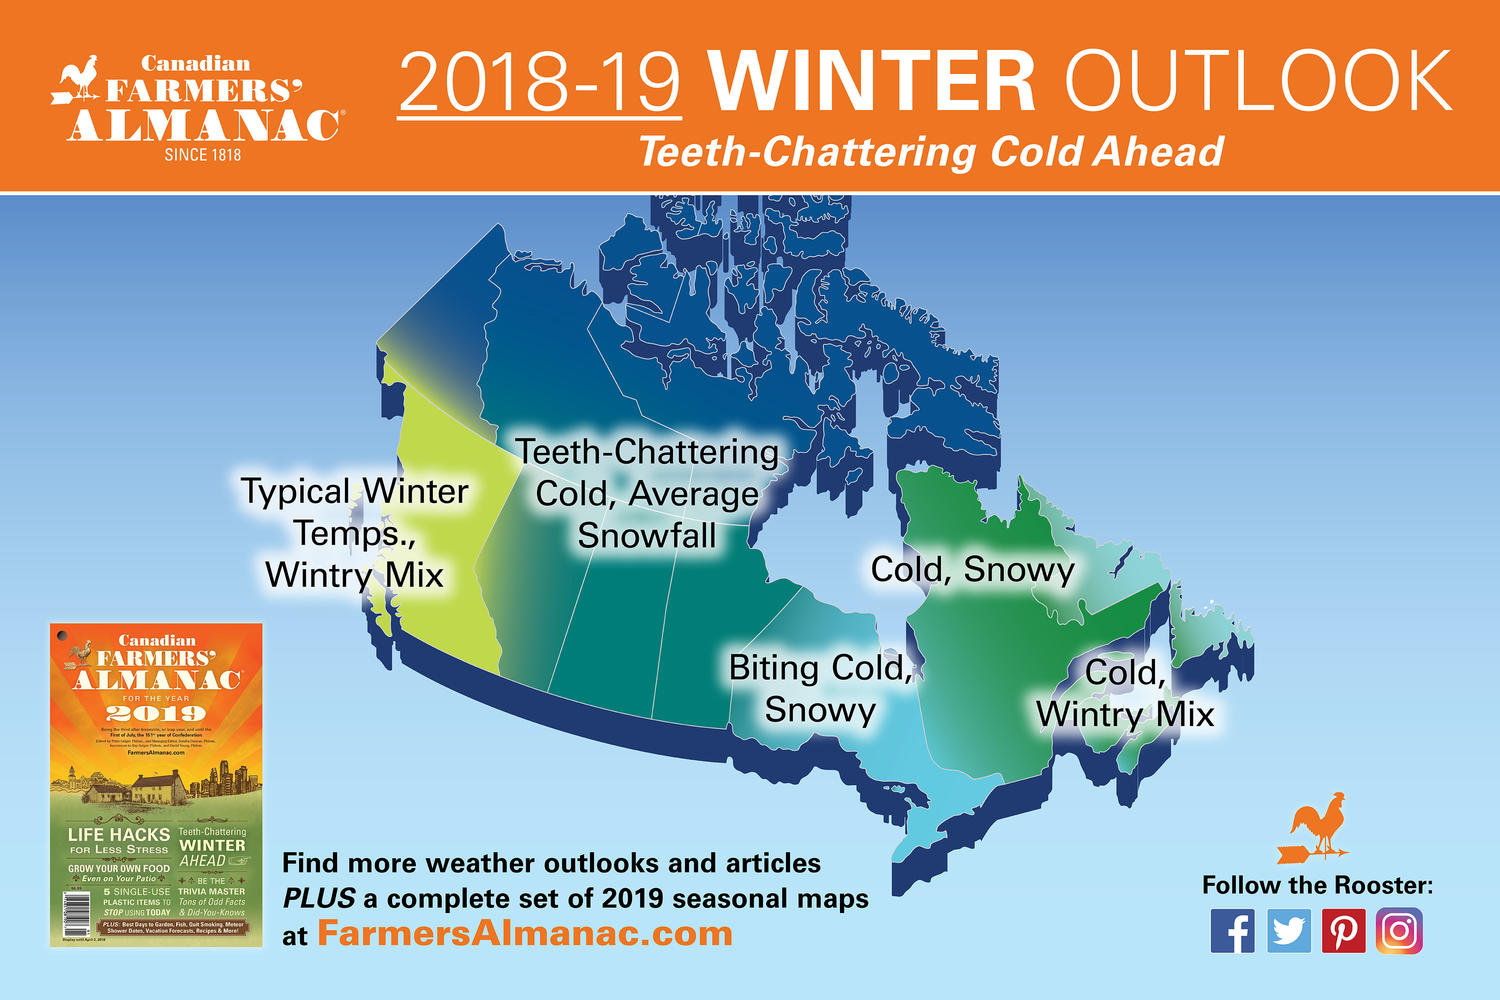 Winter Weather Forecast 2018 2019—Ontario Snowmobilers in for a Great Season Ahead | Northern ...